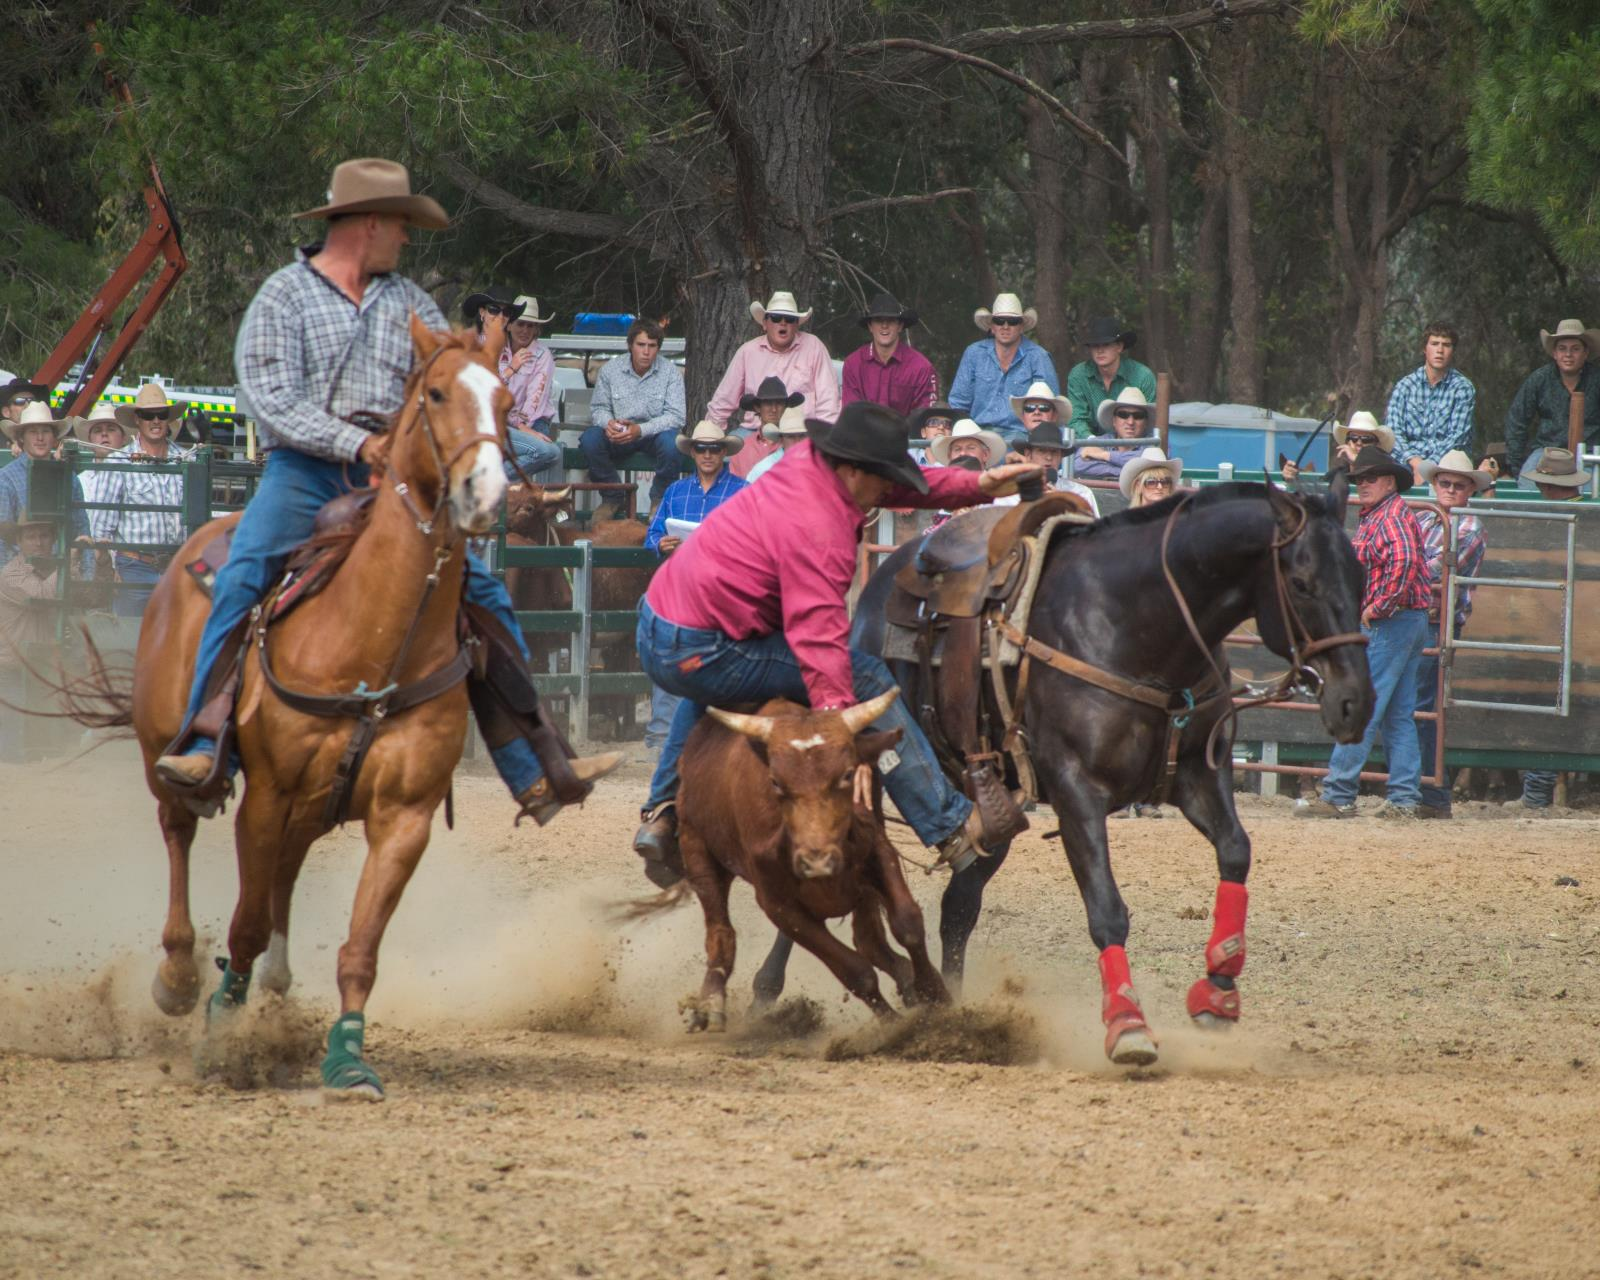 Rodeo Image 2